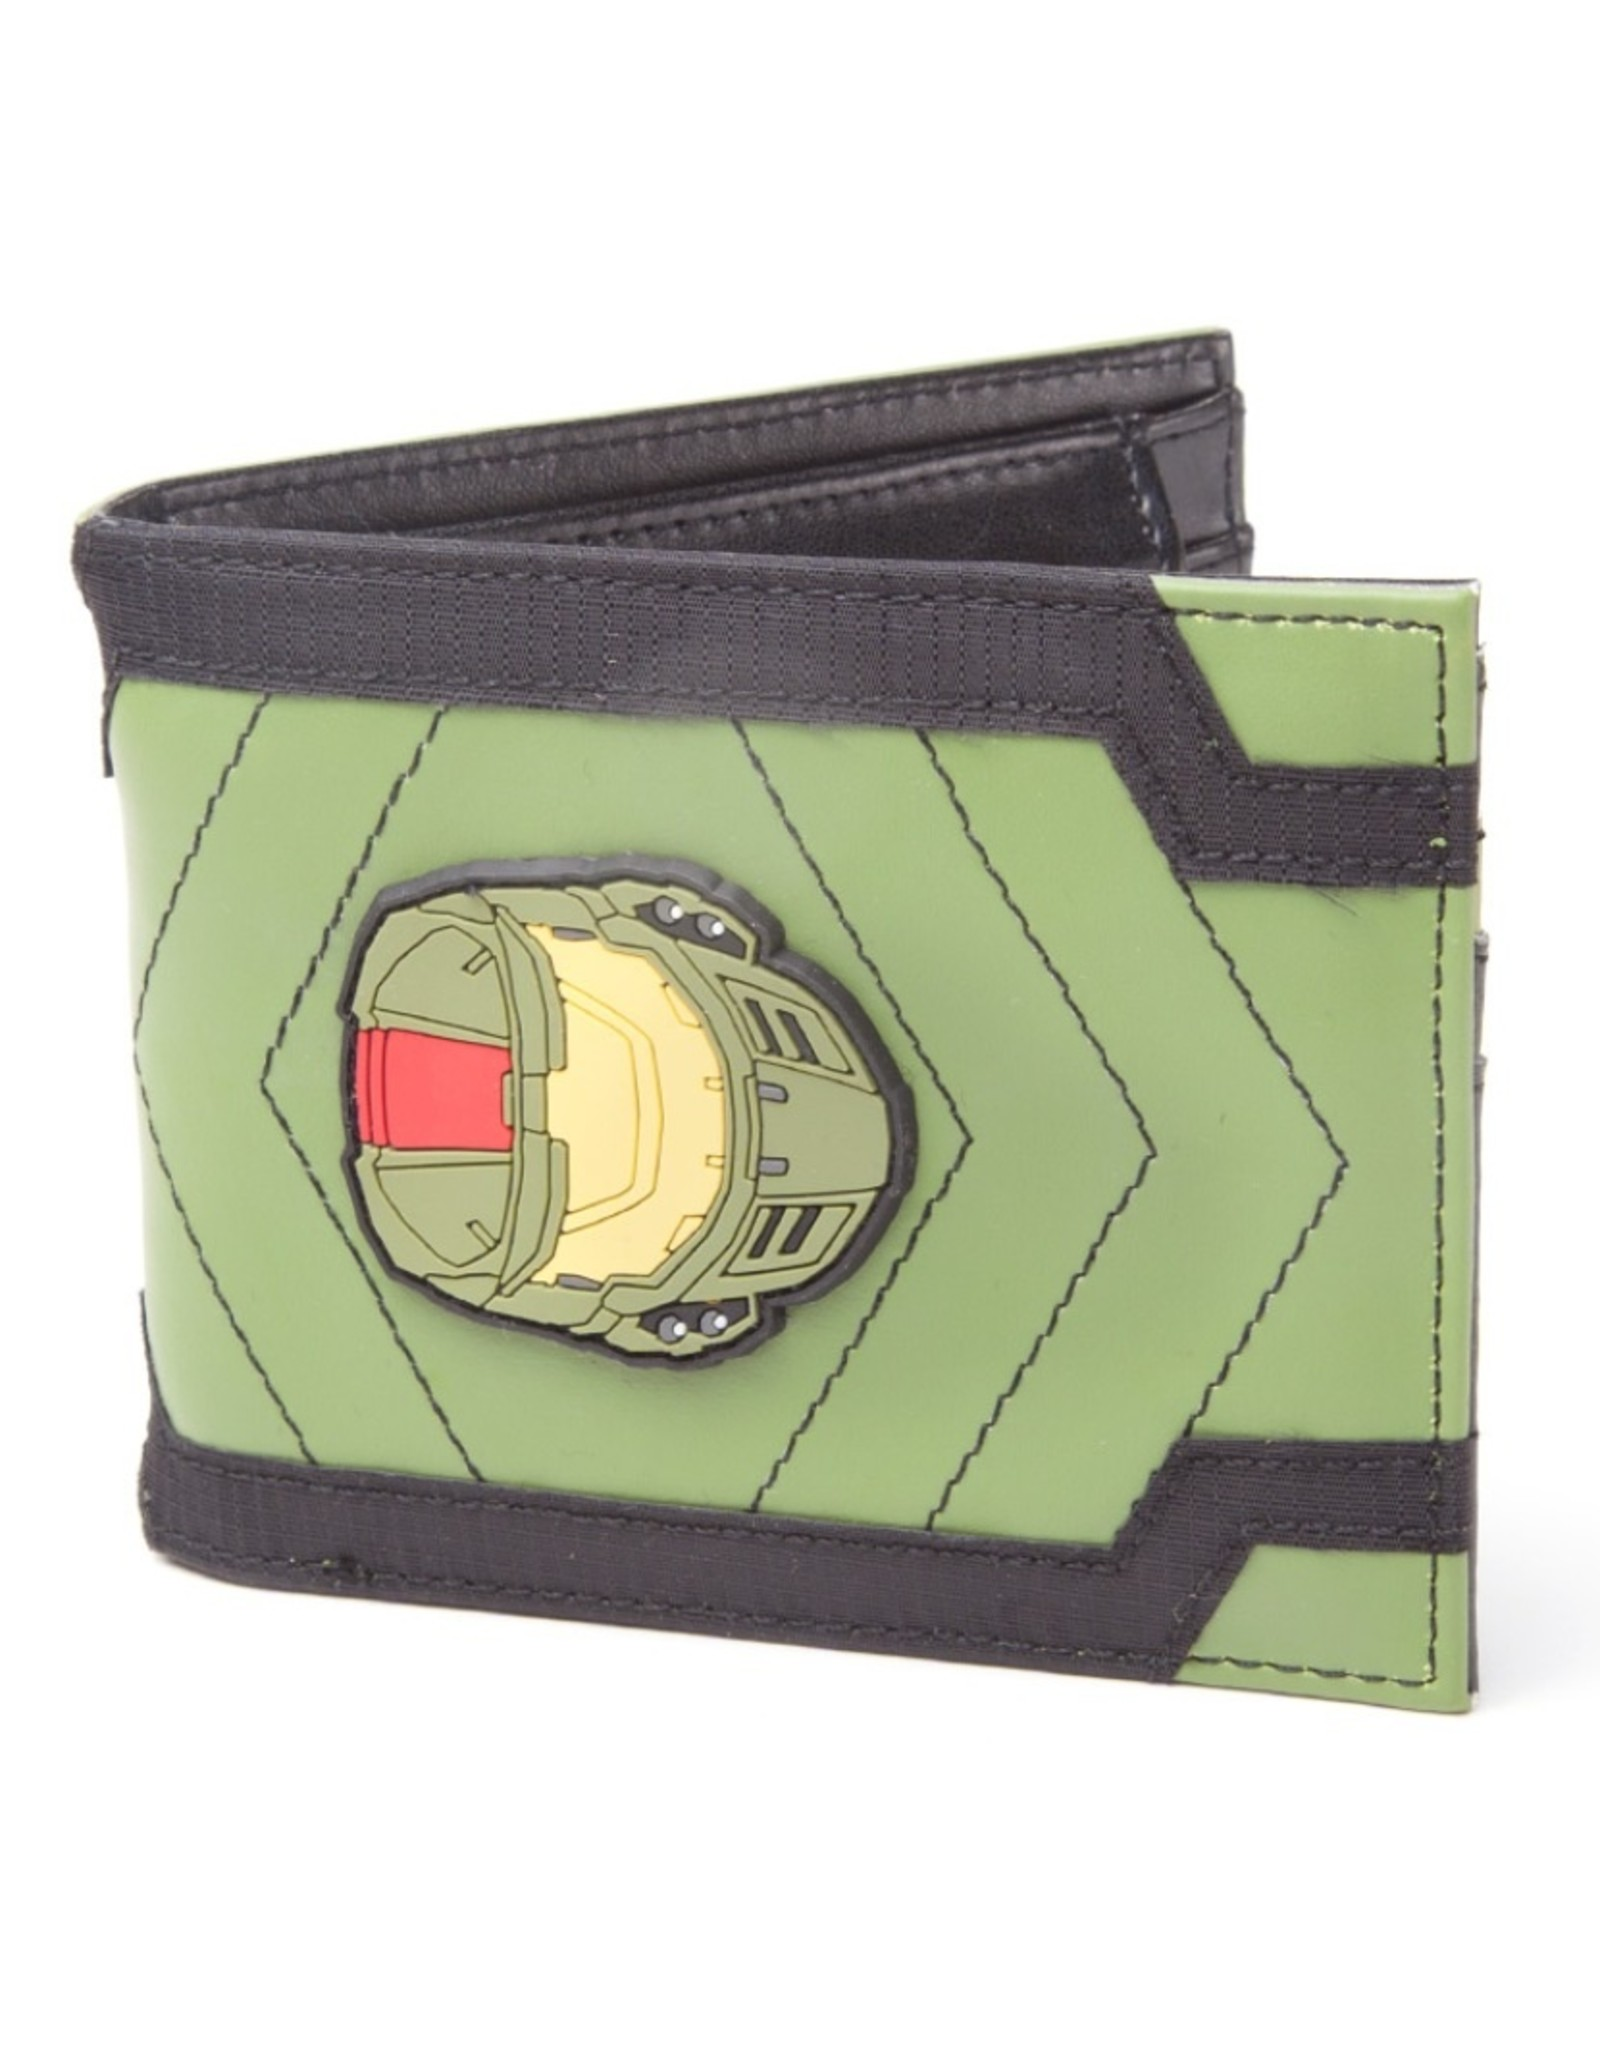 Halo Merchandise wallets - Halo 2 Master Chief wallet